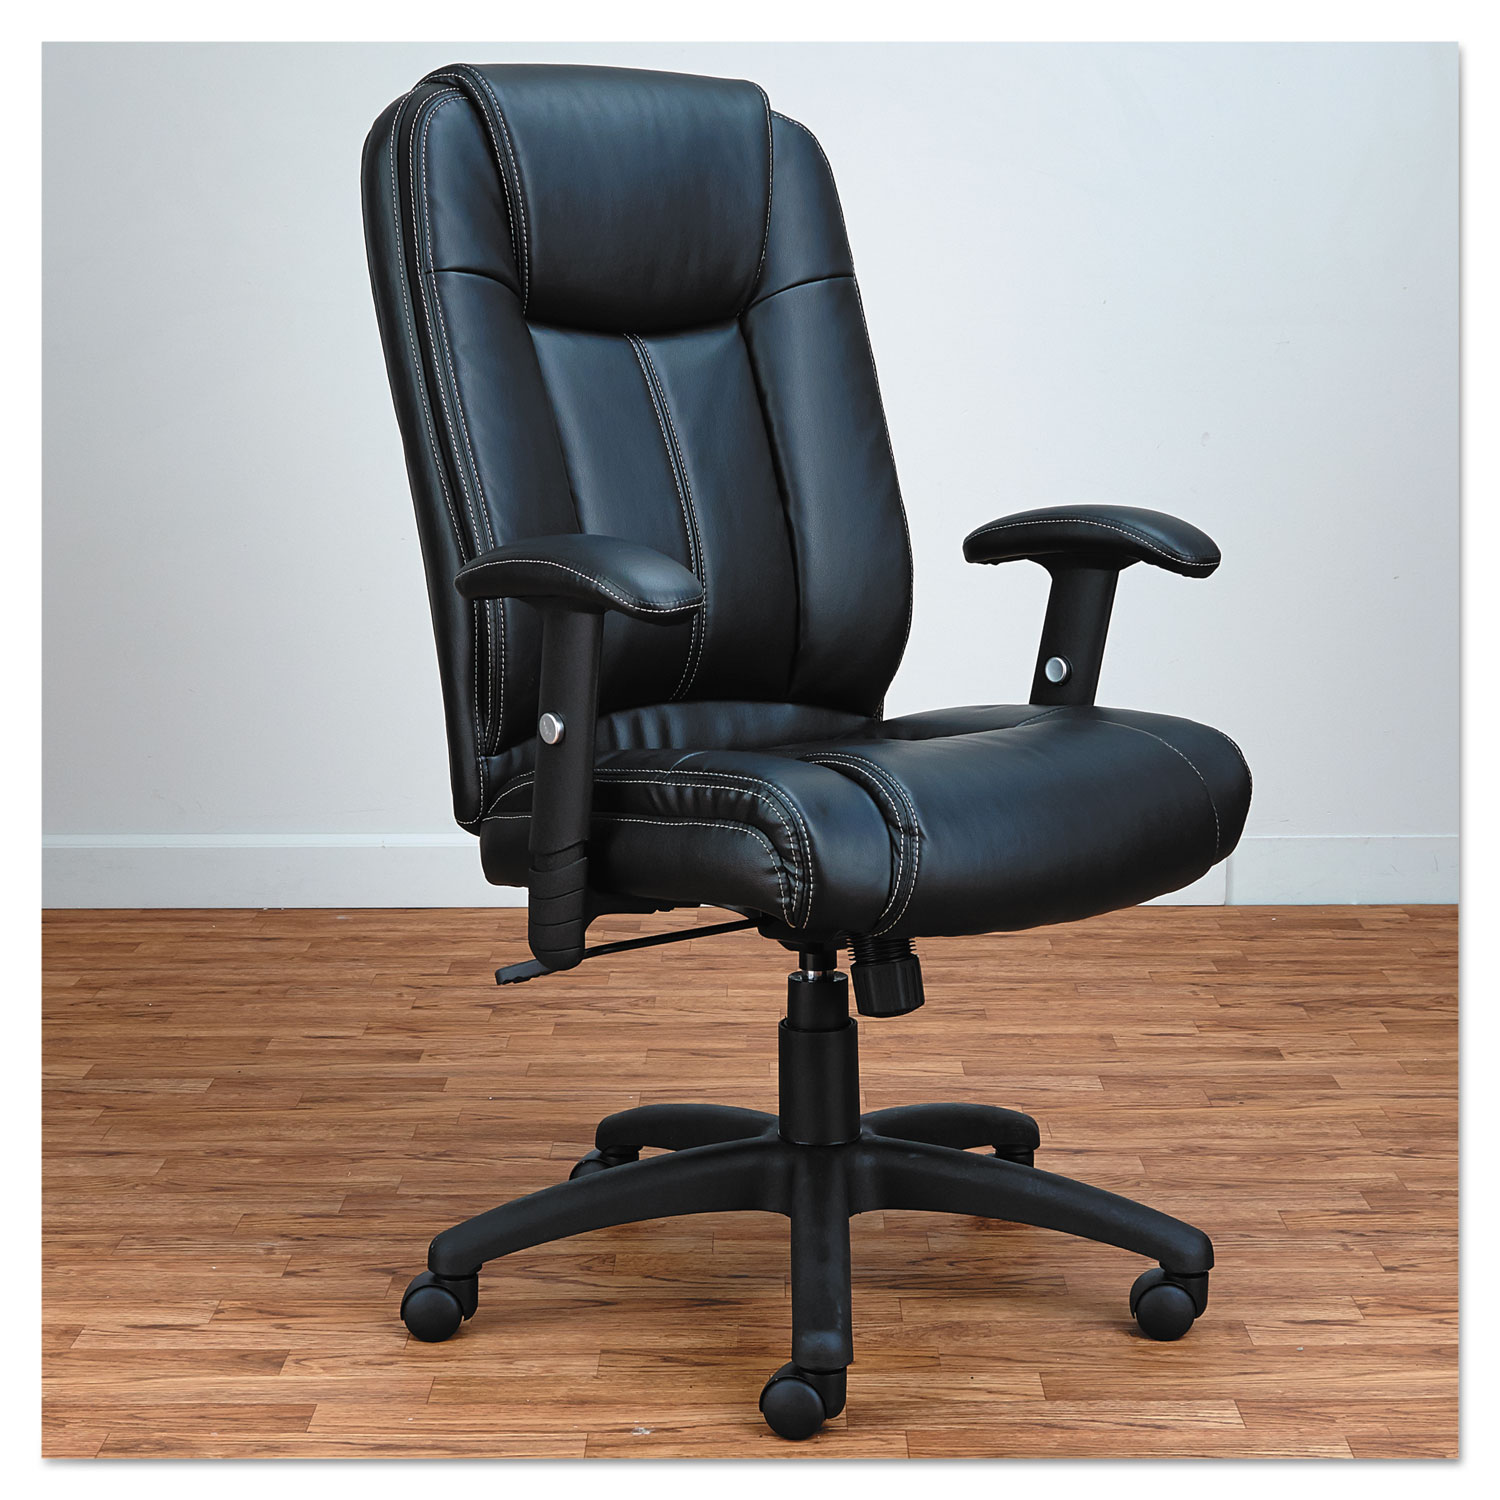 high back leather chairs. Alera CC Series Executive High-Back Swivel/Tilt Leather Chair, Black High Back Chairs